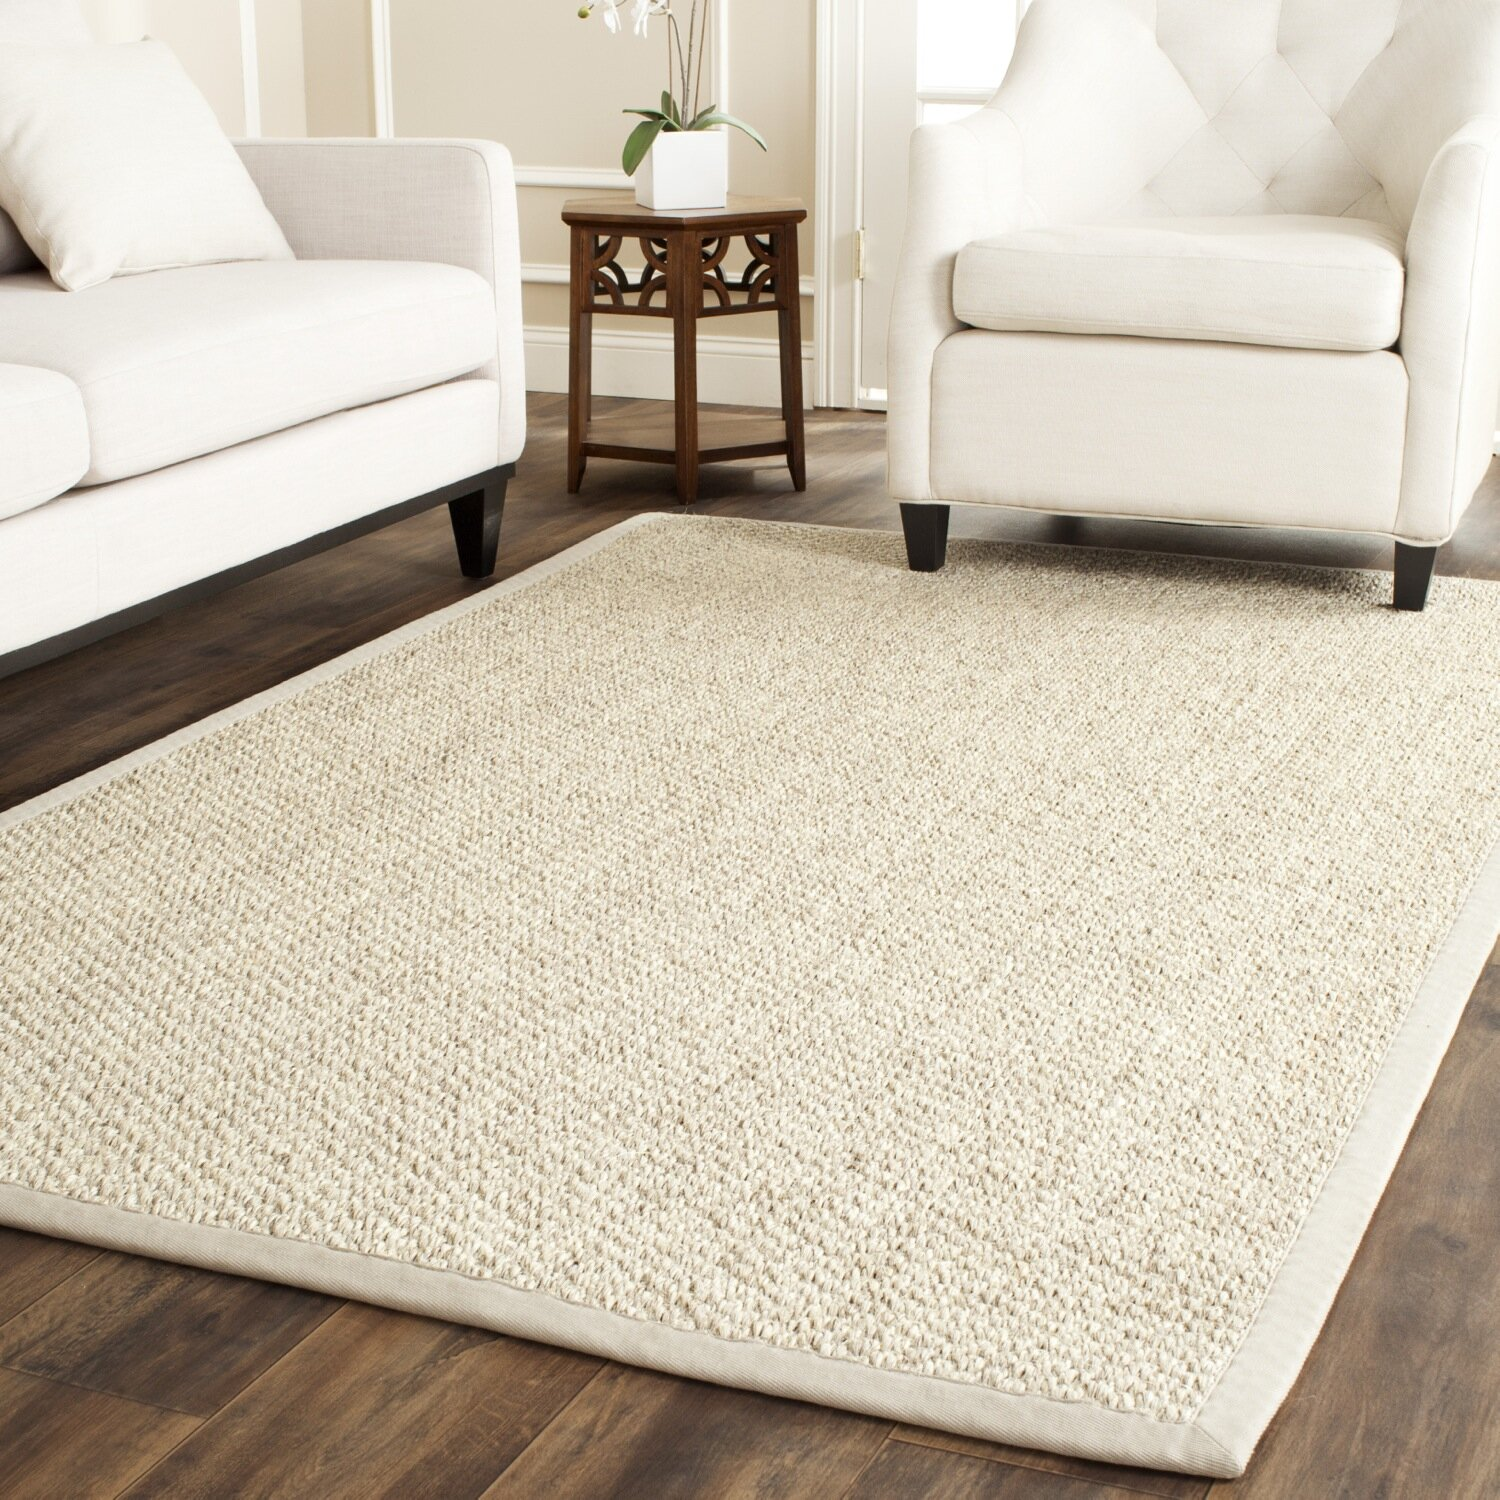 Safavieh Natural Fiber Sisal Marble Indoor Area Rug